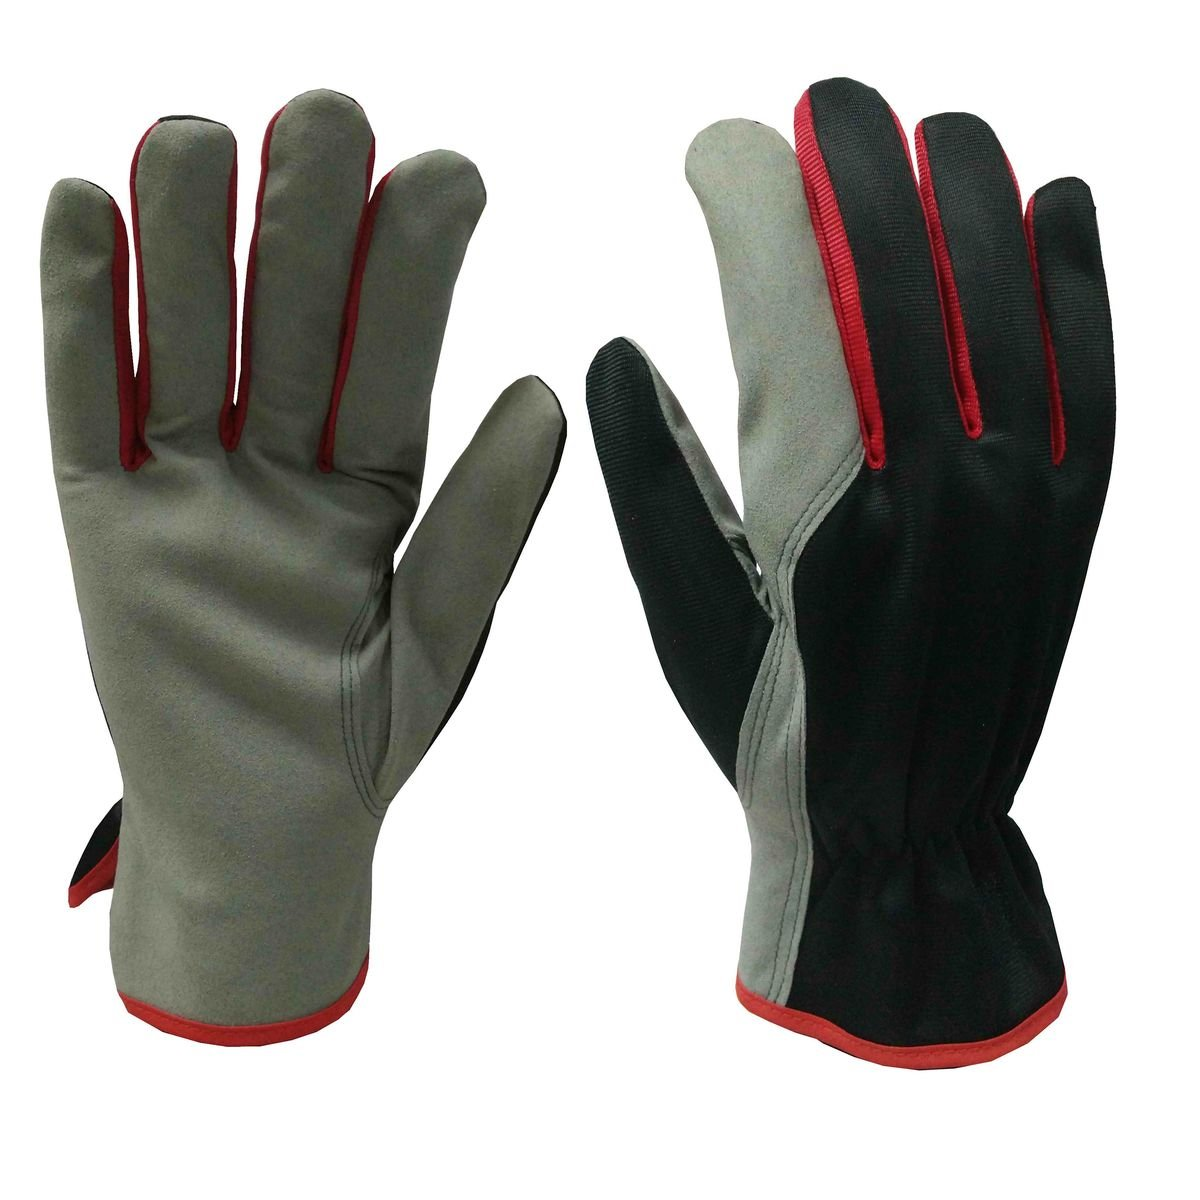 Xclou Rigger Gloves XL - Abrasion and Puncture Resistant Garden Gloves for Men and Women - Durable Working Gloves in Red and Black 126922